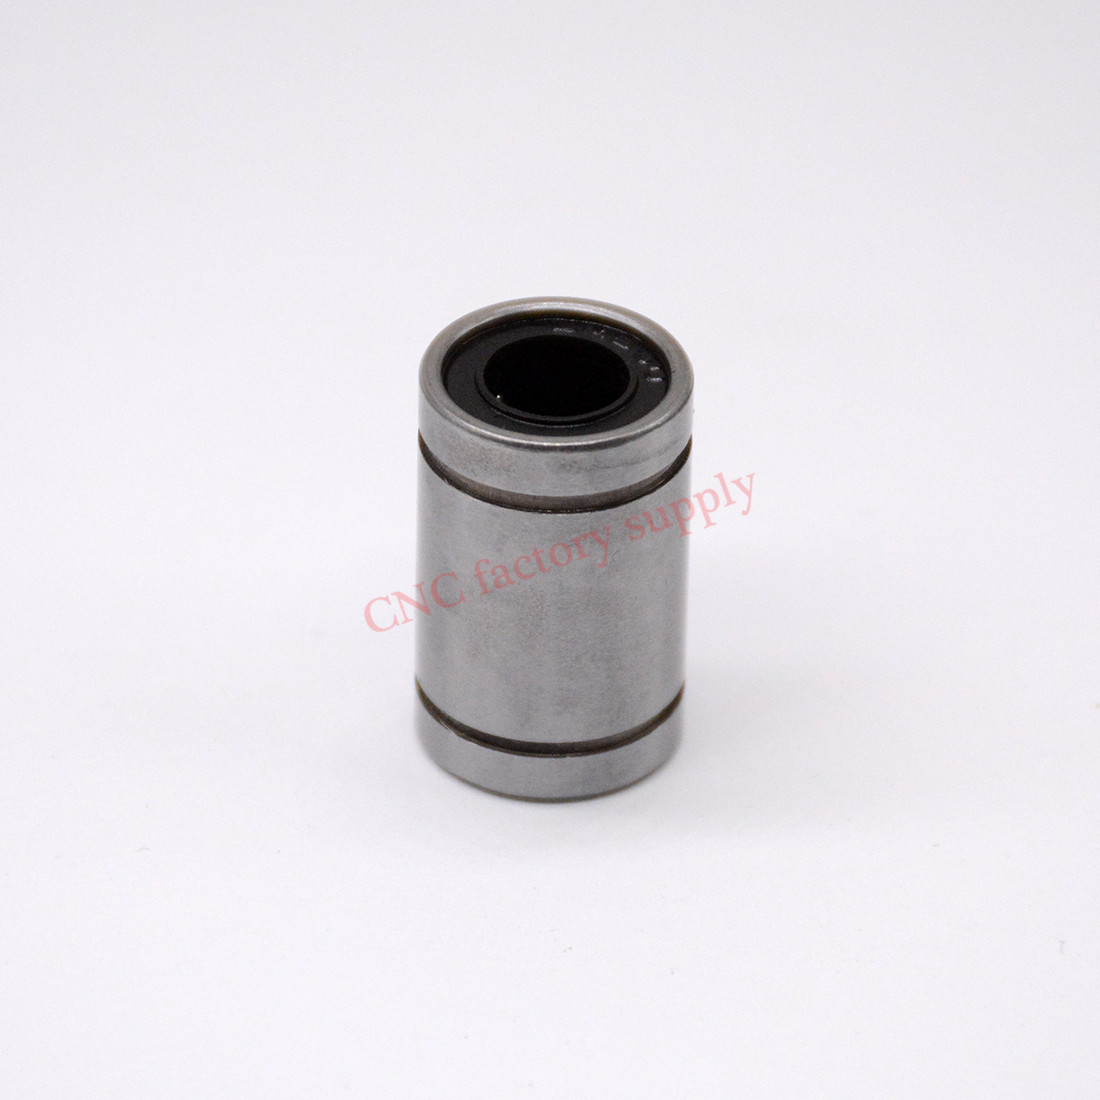 Free shipping LM20UU Linear Bushing 20mm CNC Linear Bearings 12pcs free shipping lm60uu 60mm linear bushing cnc linear bearings